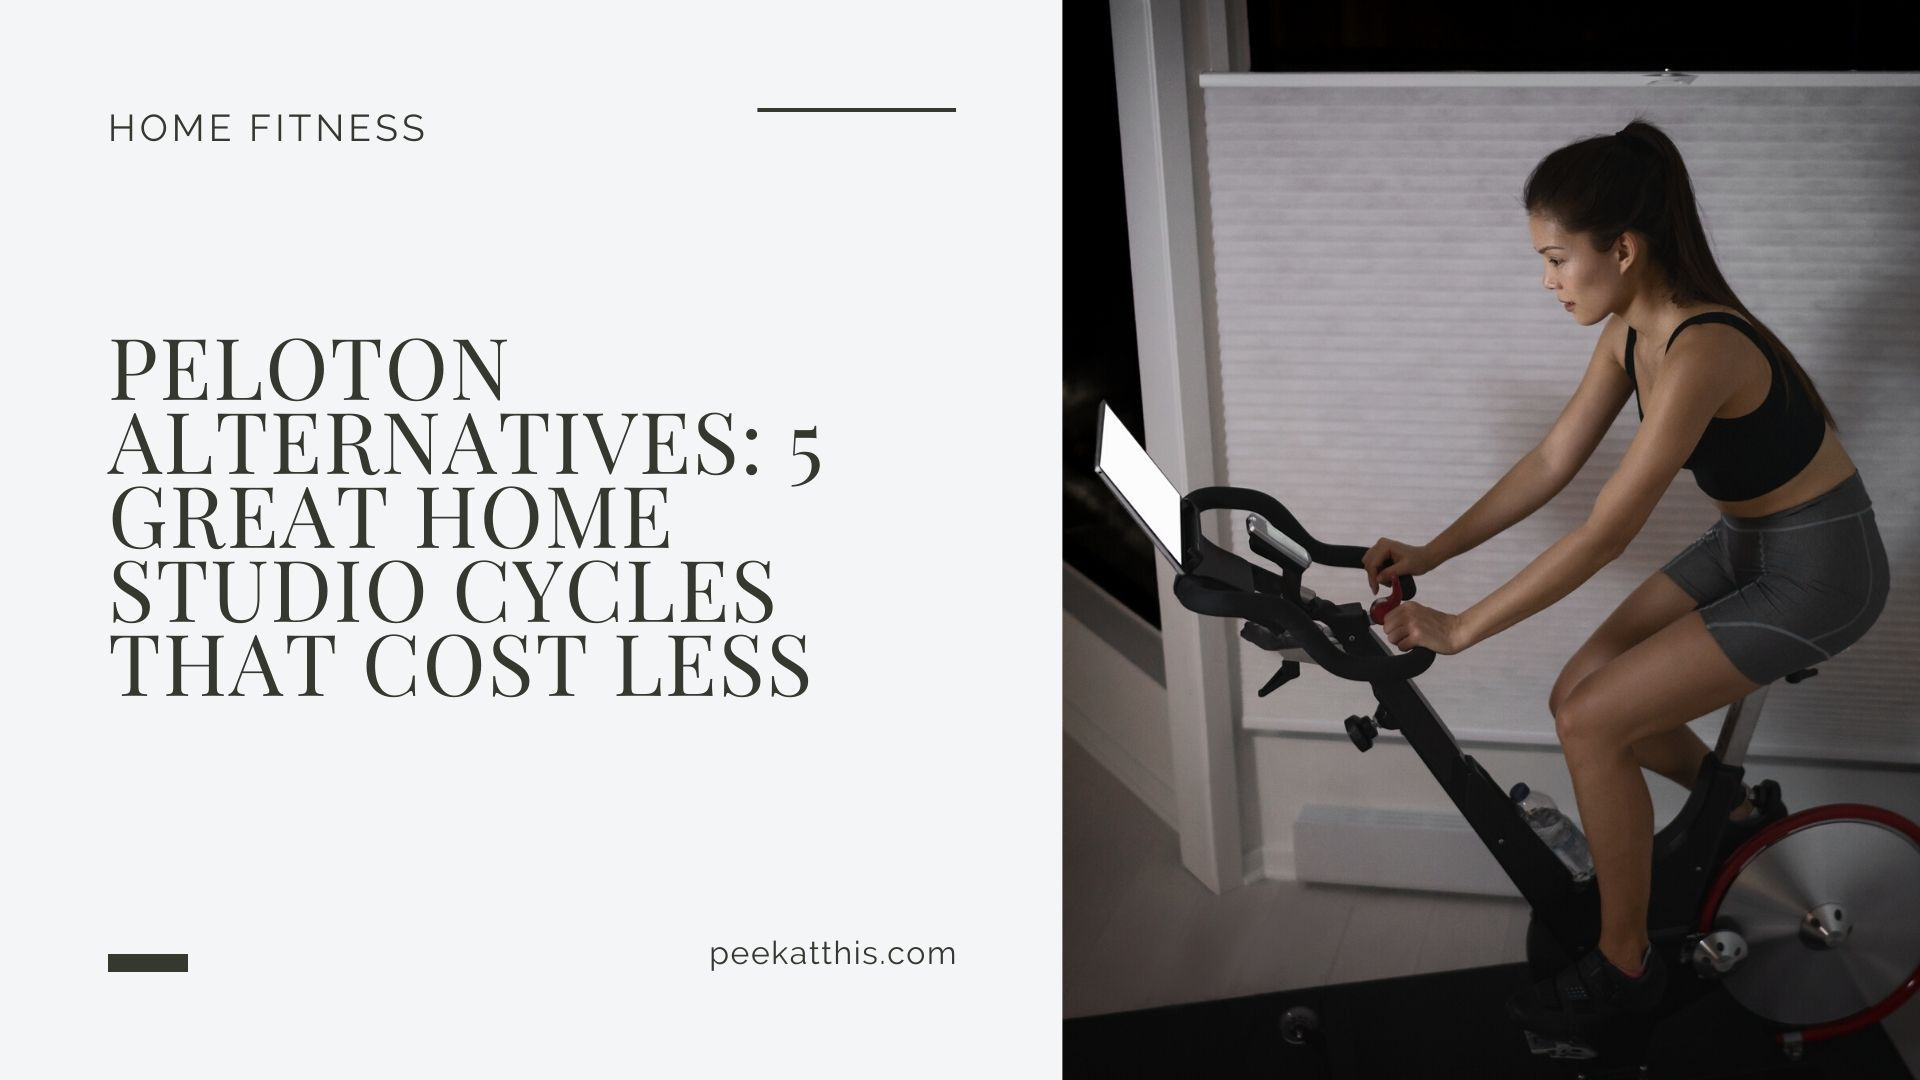 Peloton Alternatives 2021 5 Great Home Studio Cycles That Costs Less Peek At This At Home Workouts Peloton Cycle